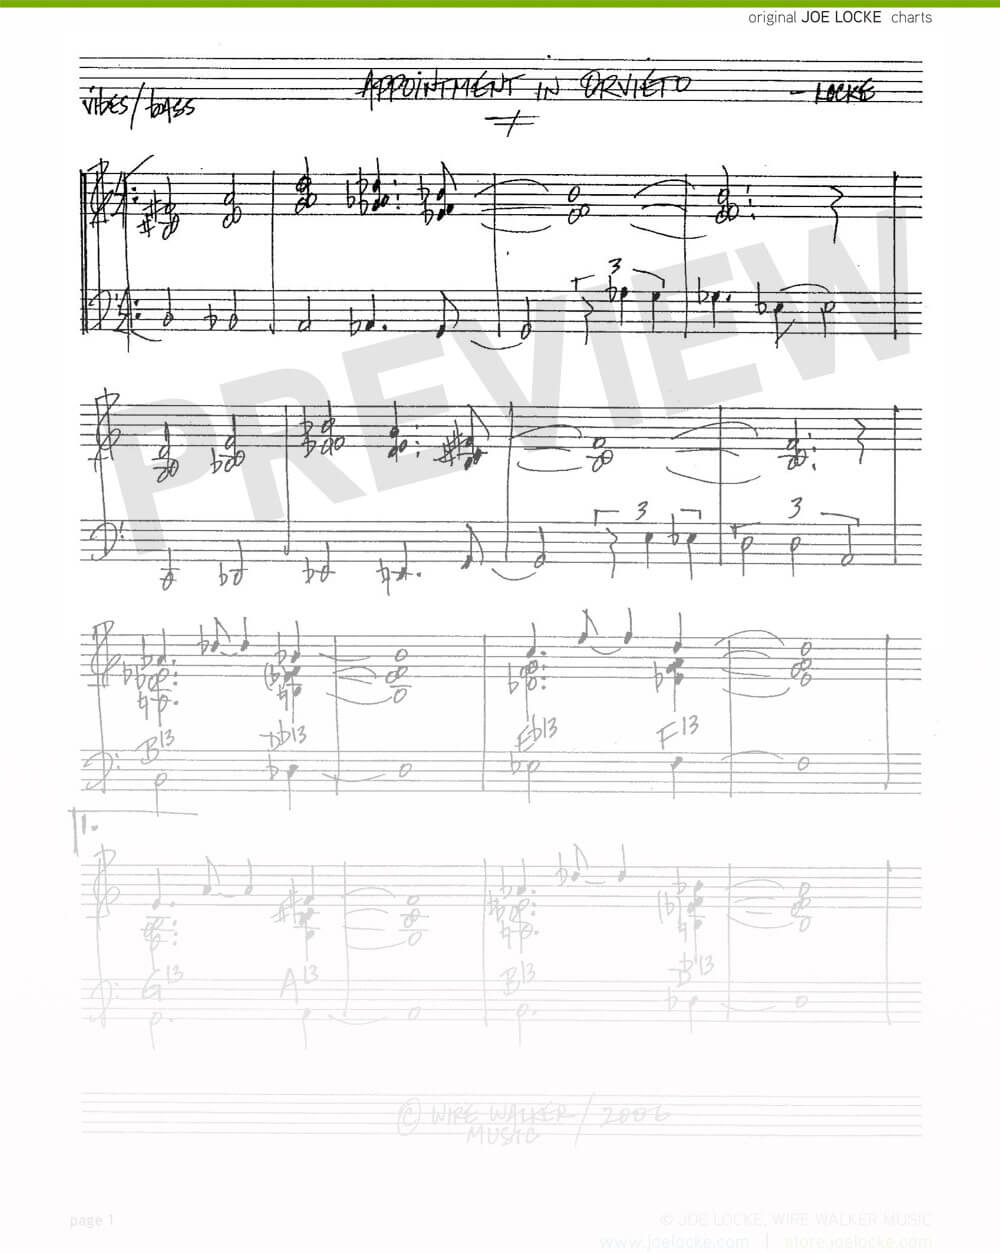 Joe Locke - Appointment in Orvieto sheet music